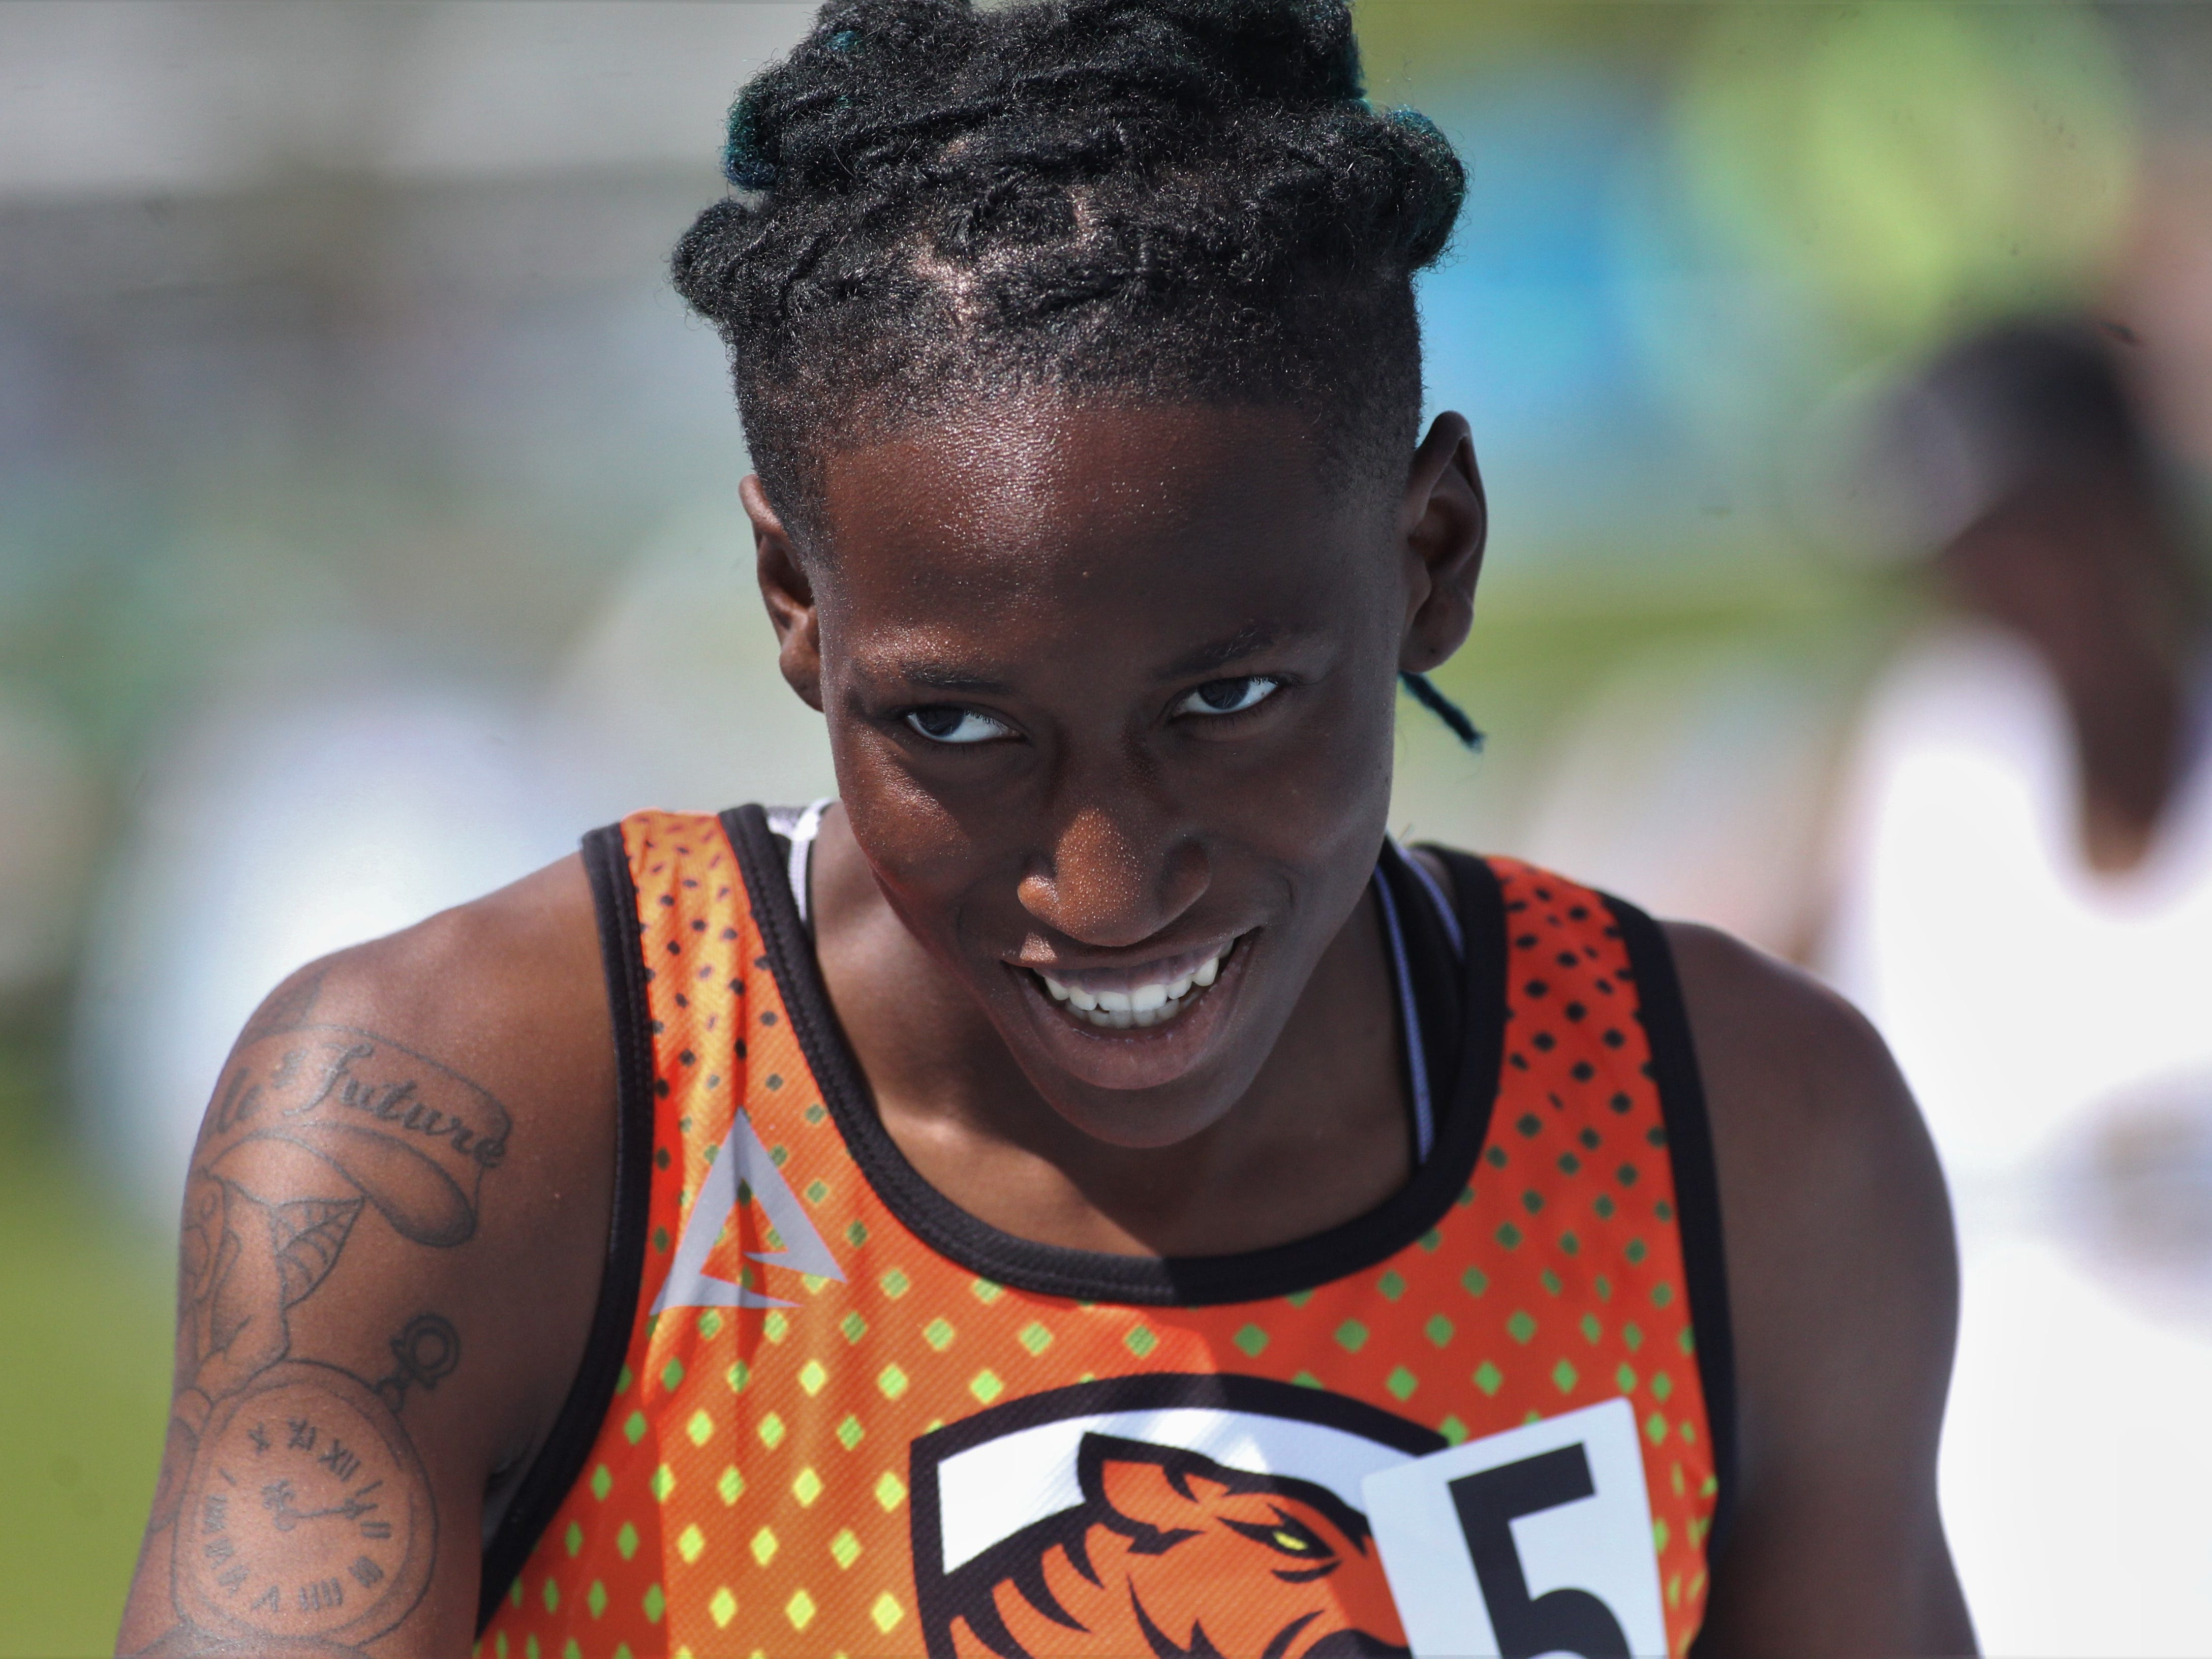 Cocoa senior Destiny Charles won a state title in the 200m dash and won silver in the 100 during the FHSAA Track and Field State Championships at UNF's Hodges Stadium in Jacksonville on May 3 and 4, 2019.